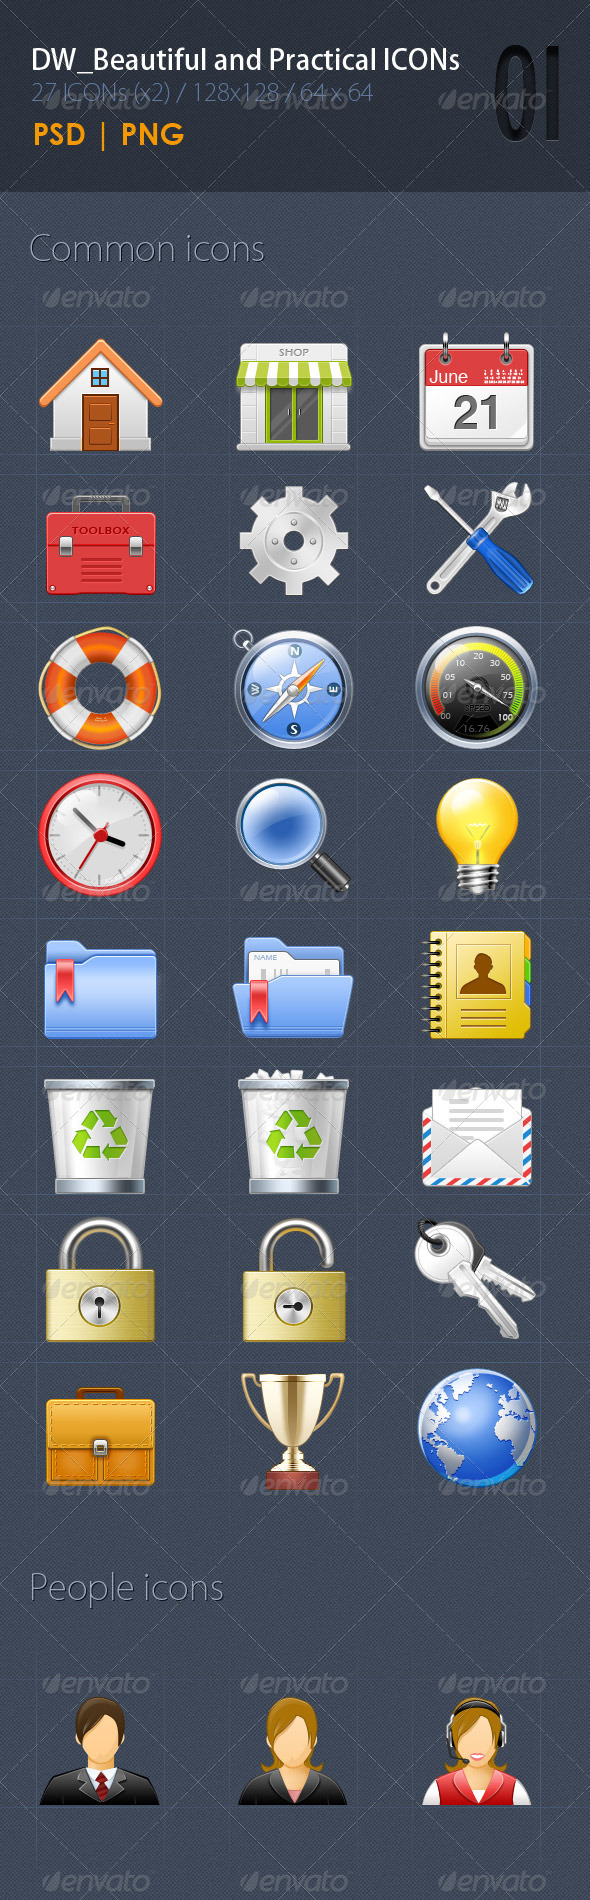 GraphicRiver 27 Beautiful&Practical ICON1 5314024